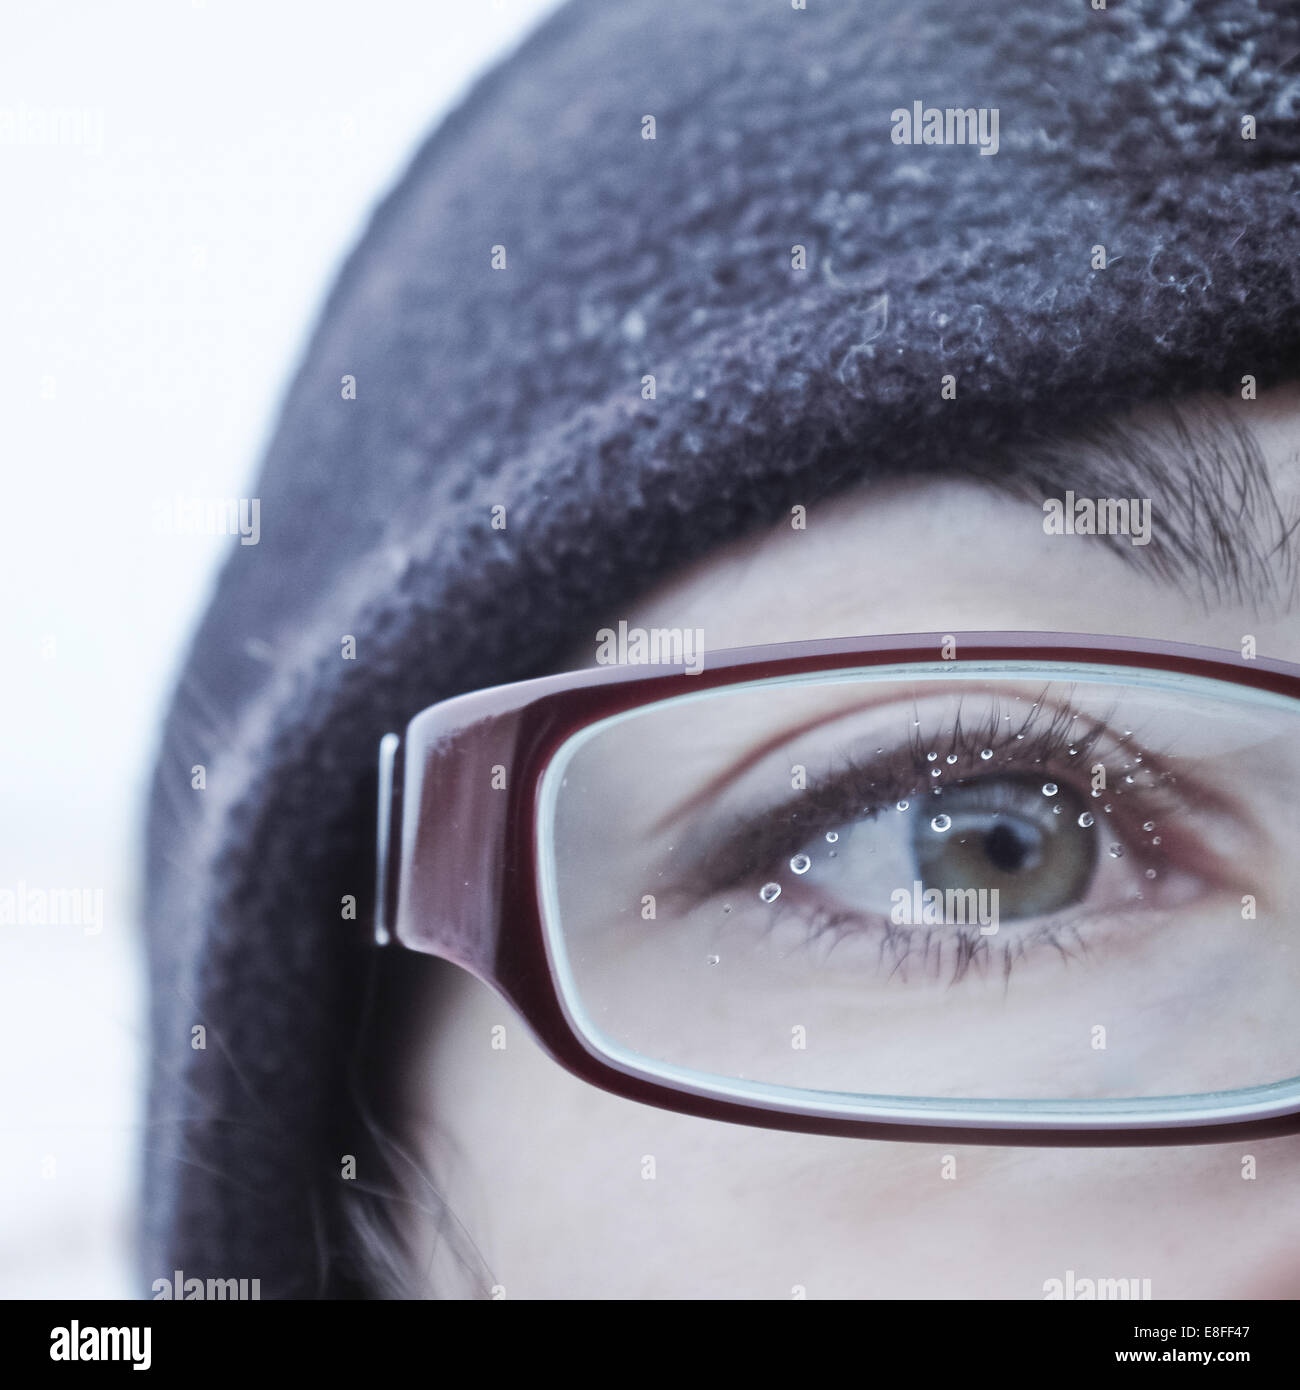 Water drops on a woman's spectacle glasses - Stock Image